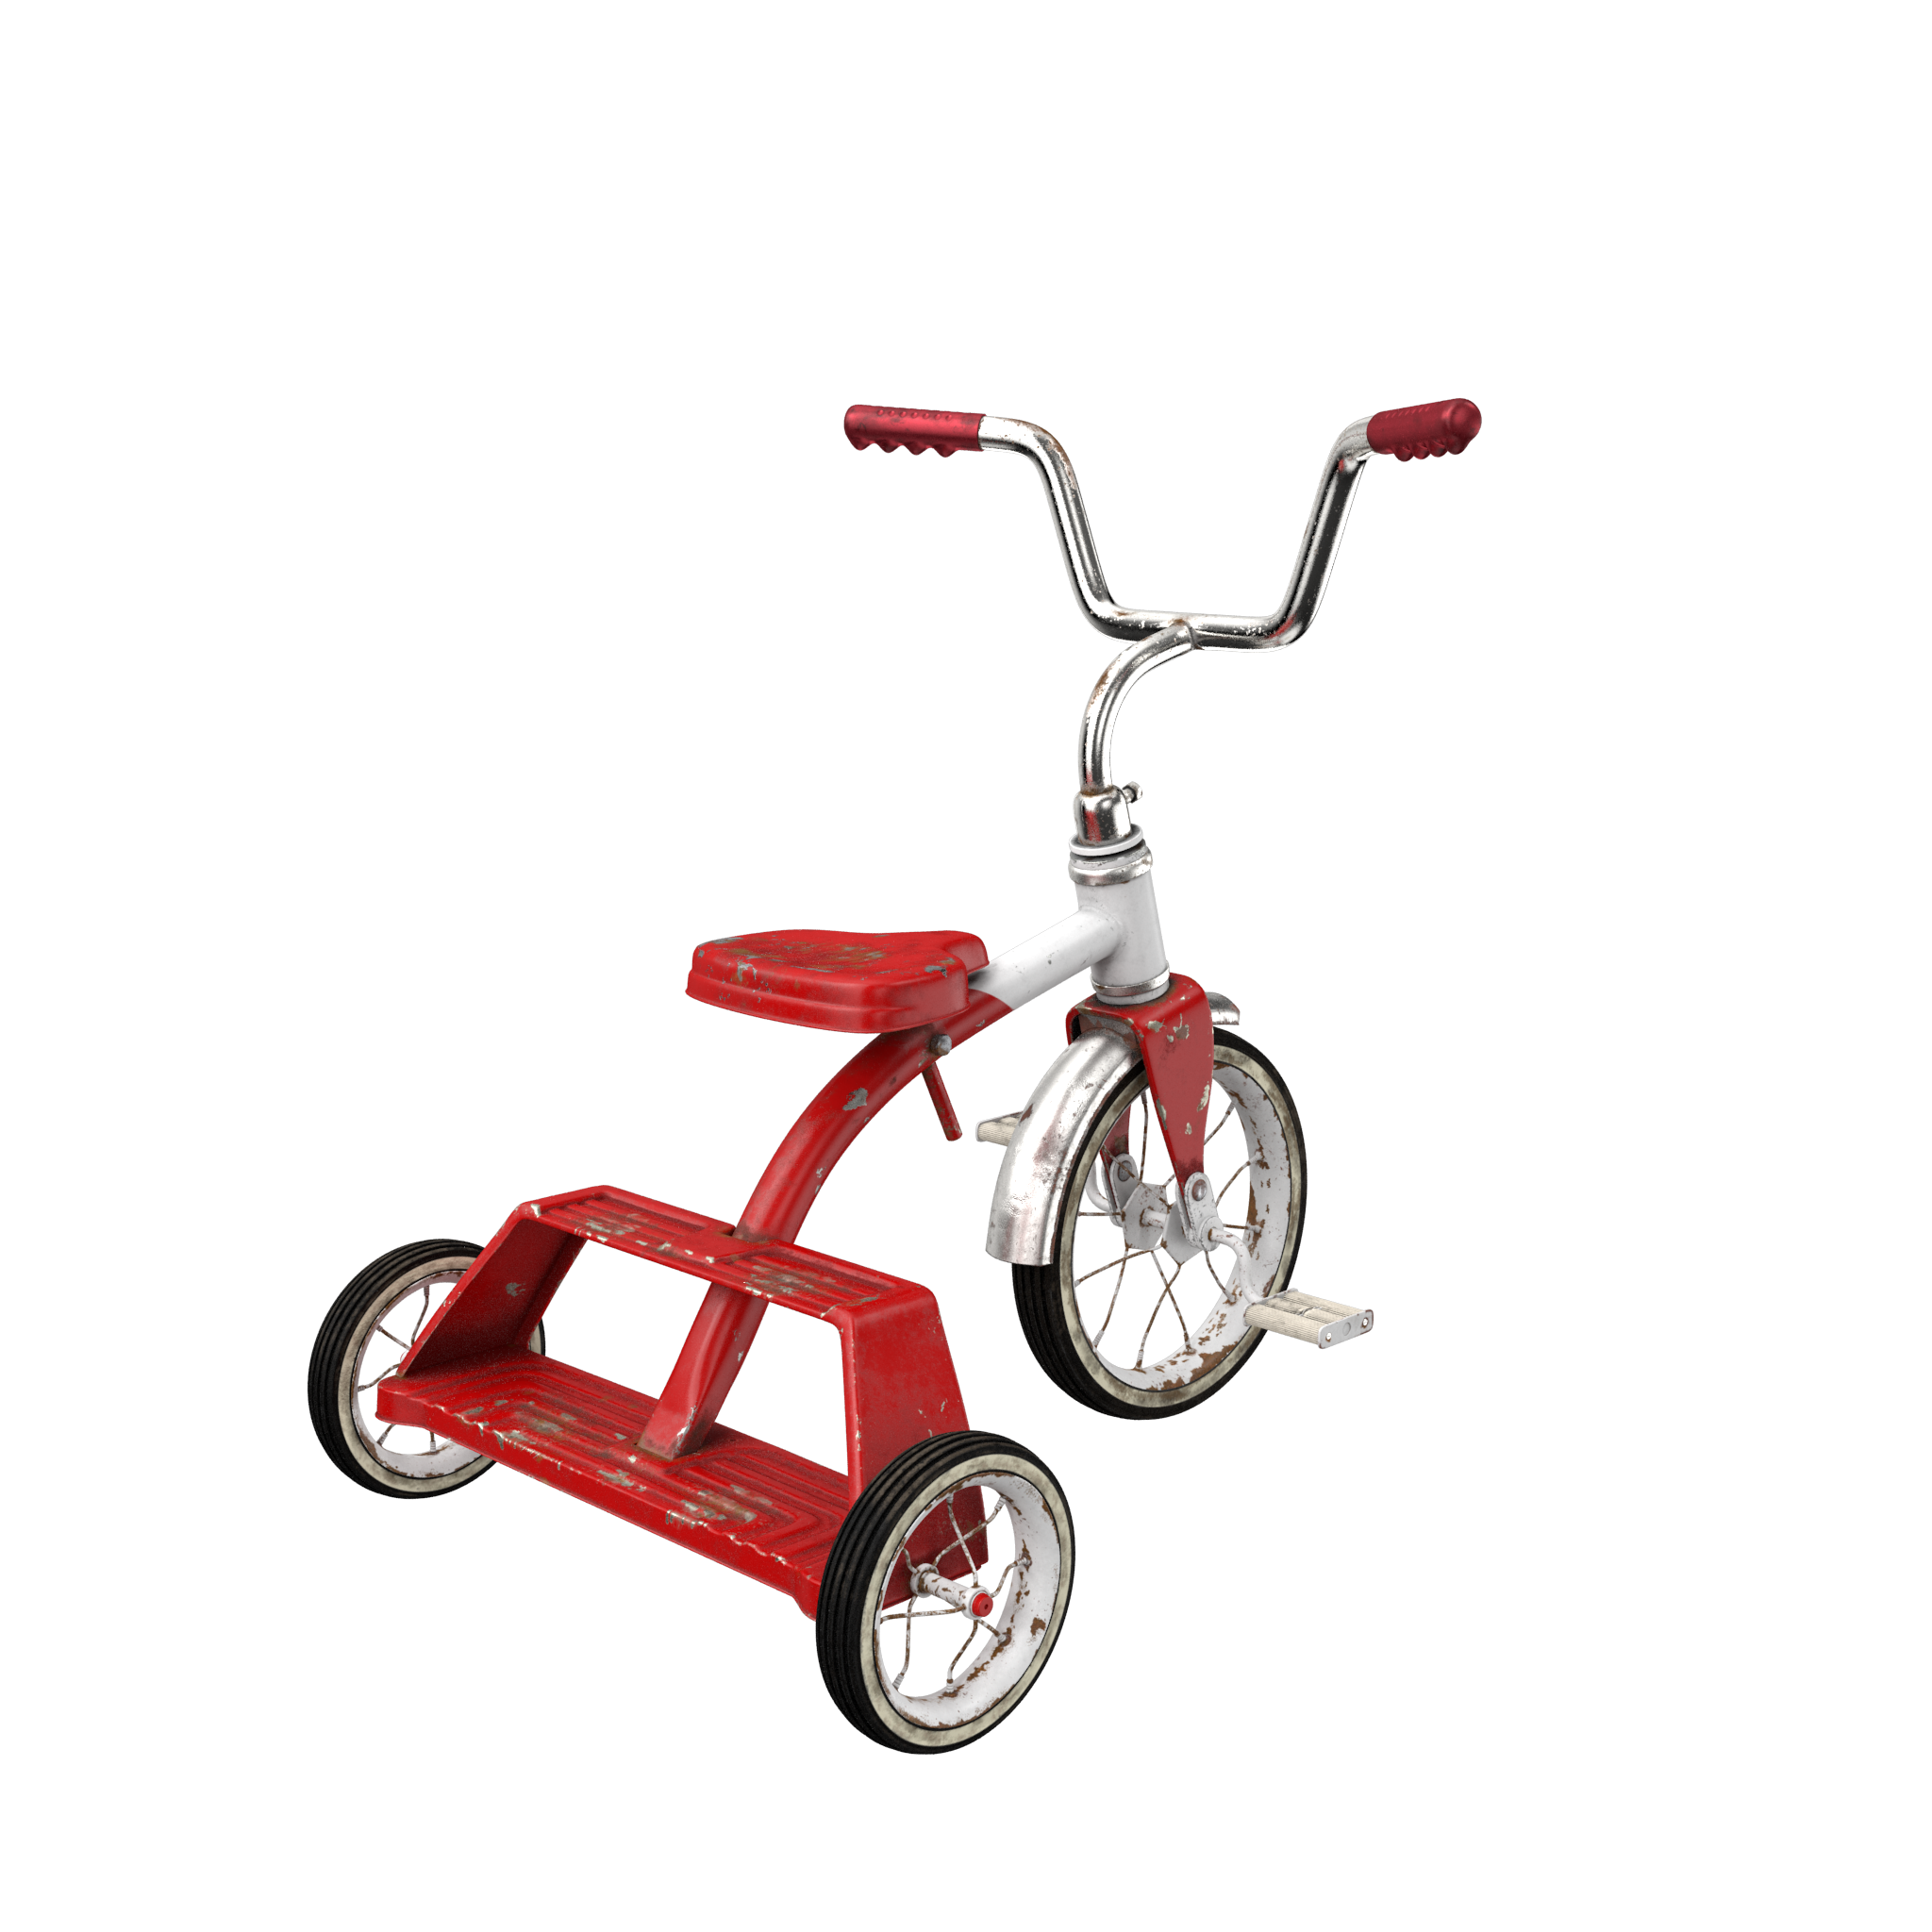 Dirty Vintage Tricycle Png Image Purepng Free Transparent Cc0 Png Image Library